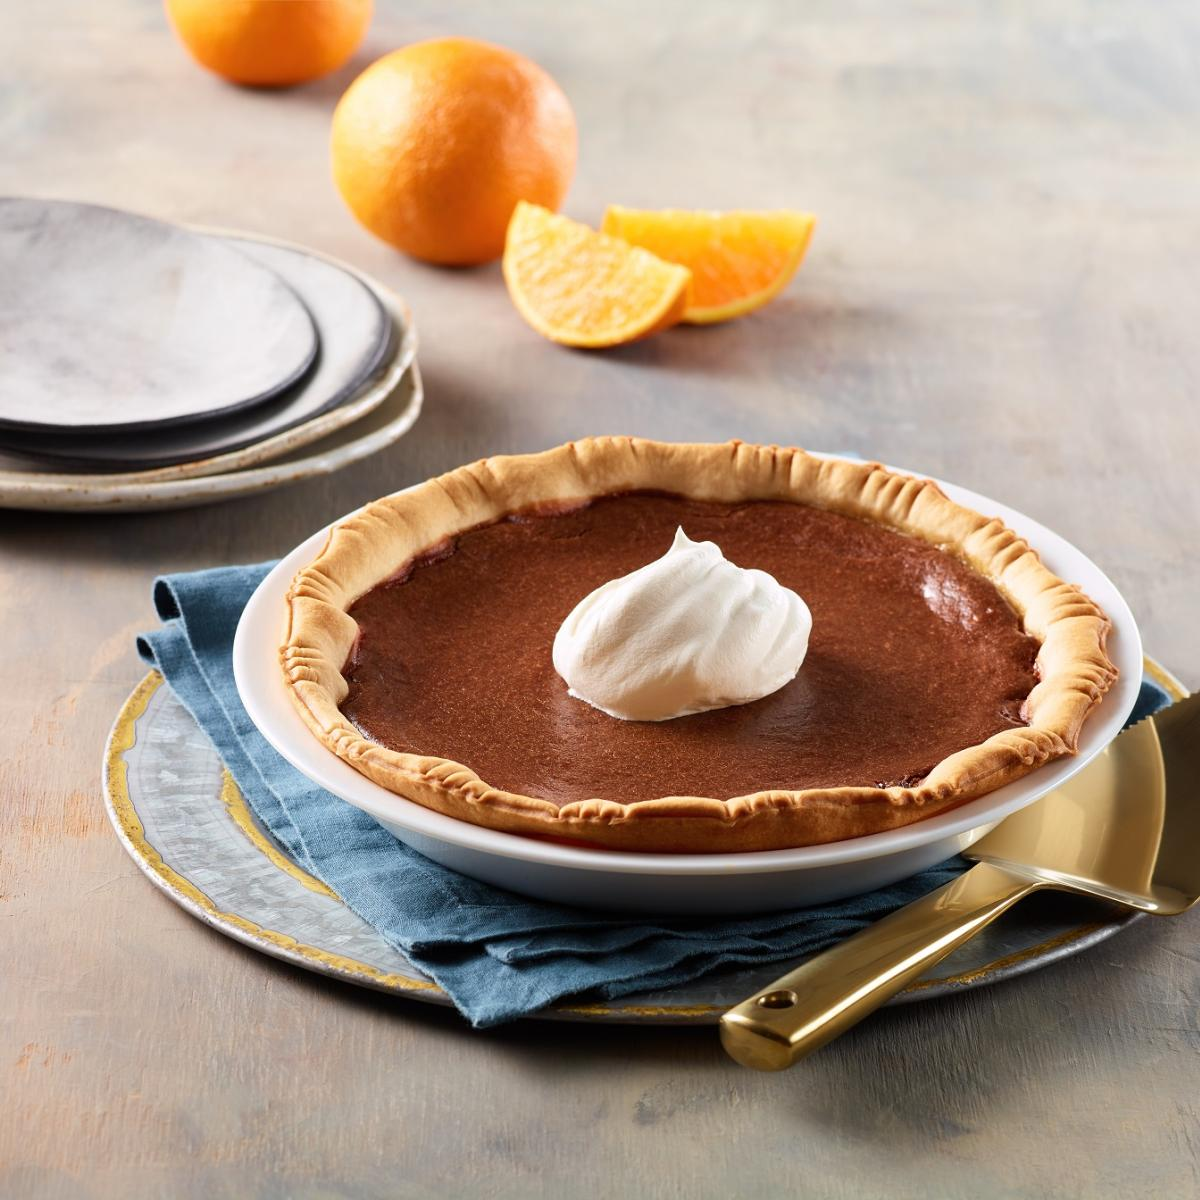 Wewalka Recipe - Orange Chocolate Pie